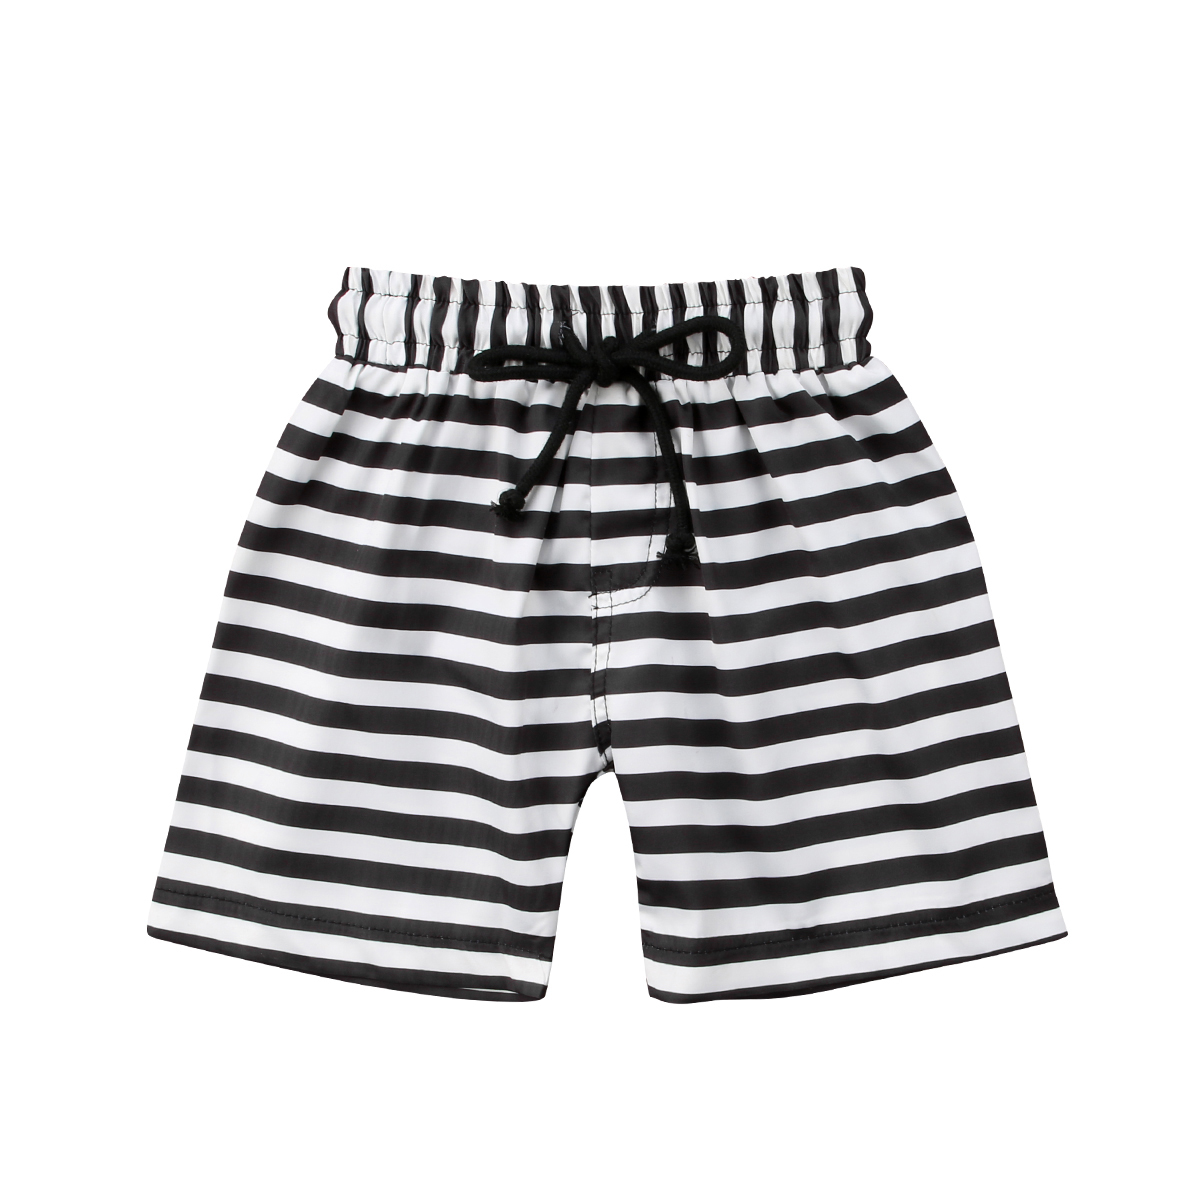 Swimwear Shorts Beachwear Swimming-Pants Baby-Boys Summer Sport-Bottoms Striped Kid's